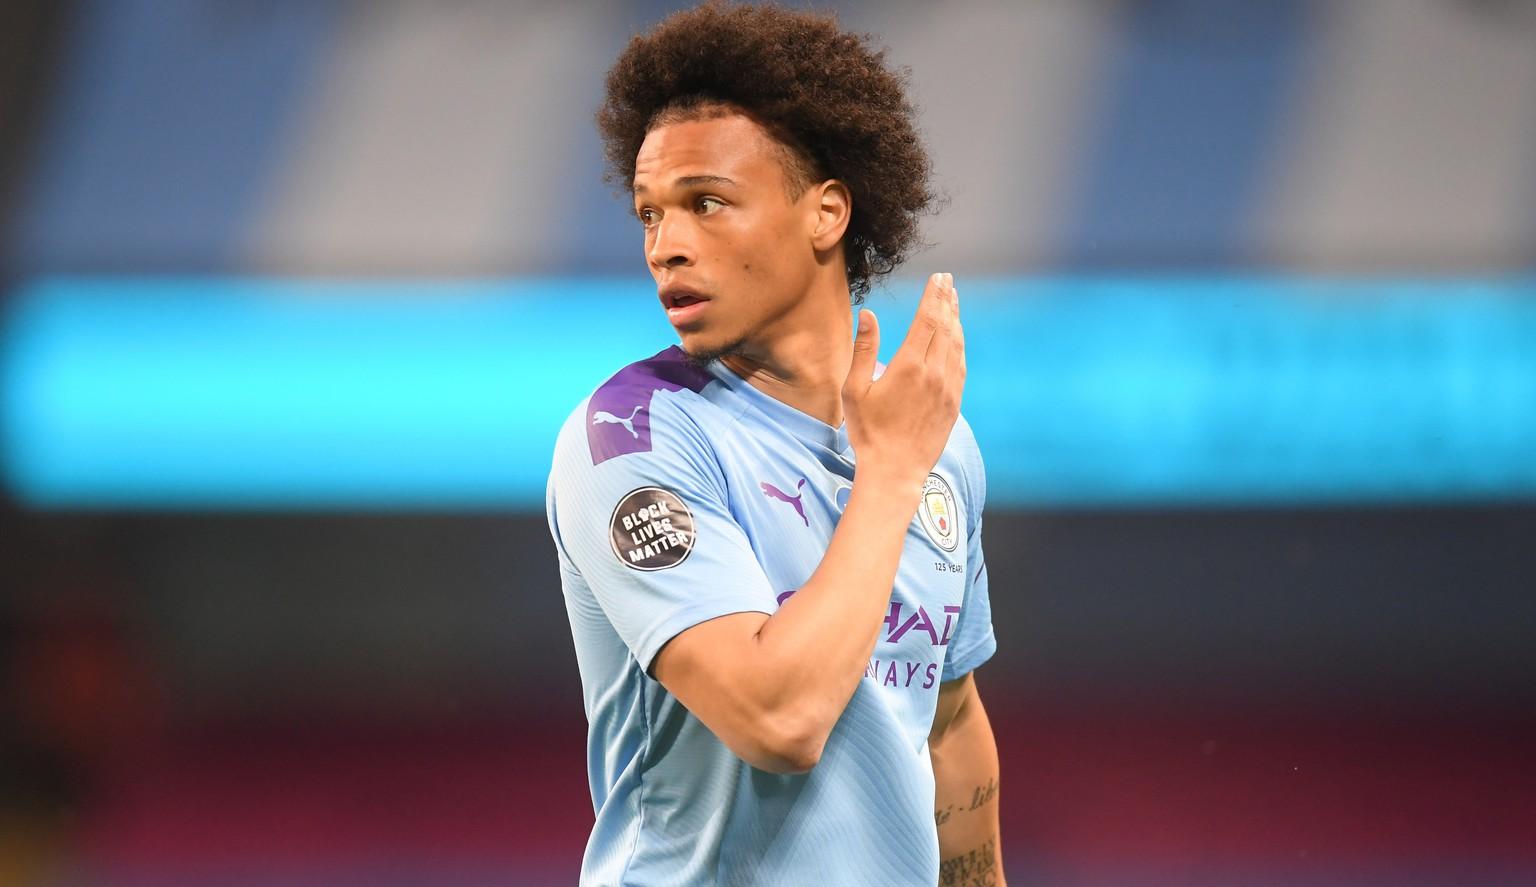 epa08518716 (FILE) - Leroy Sane of Manchester City who came on from the bench during the English Premier League match between Manchester City and Burnley in Manchester, Britain, 22 June 2020 (re-issued 30 June 2020). According to media reports on 30 June 2020, Bayern Munich have agreed to buy the  winger for a fee of around ?45 million plus add-ons to sign a five-year deal.  EPA/Michael Regan/NMC/Pool EDITORIAL USE ONLY. No use with unauthorized audio, video, data, fixture lists, club/league logos or 'live' services. Online in-match use limited to 120 images, no video emulation. No use in betting, games or single club/league/player publications.